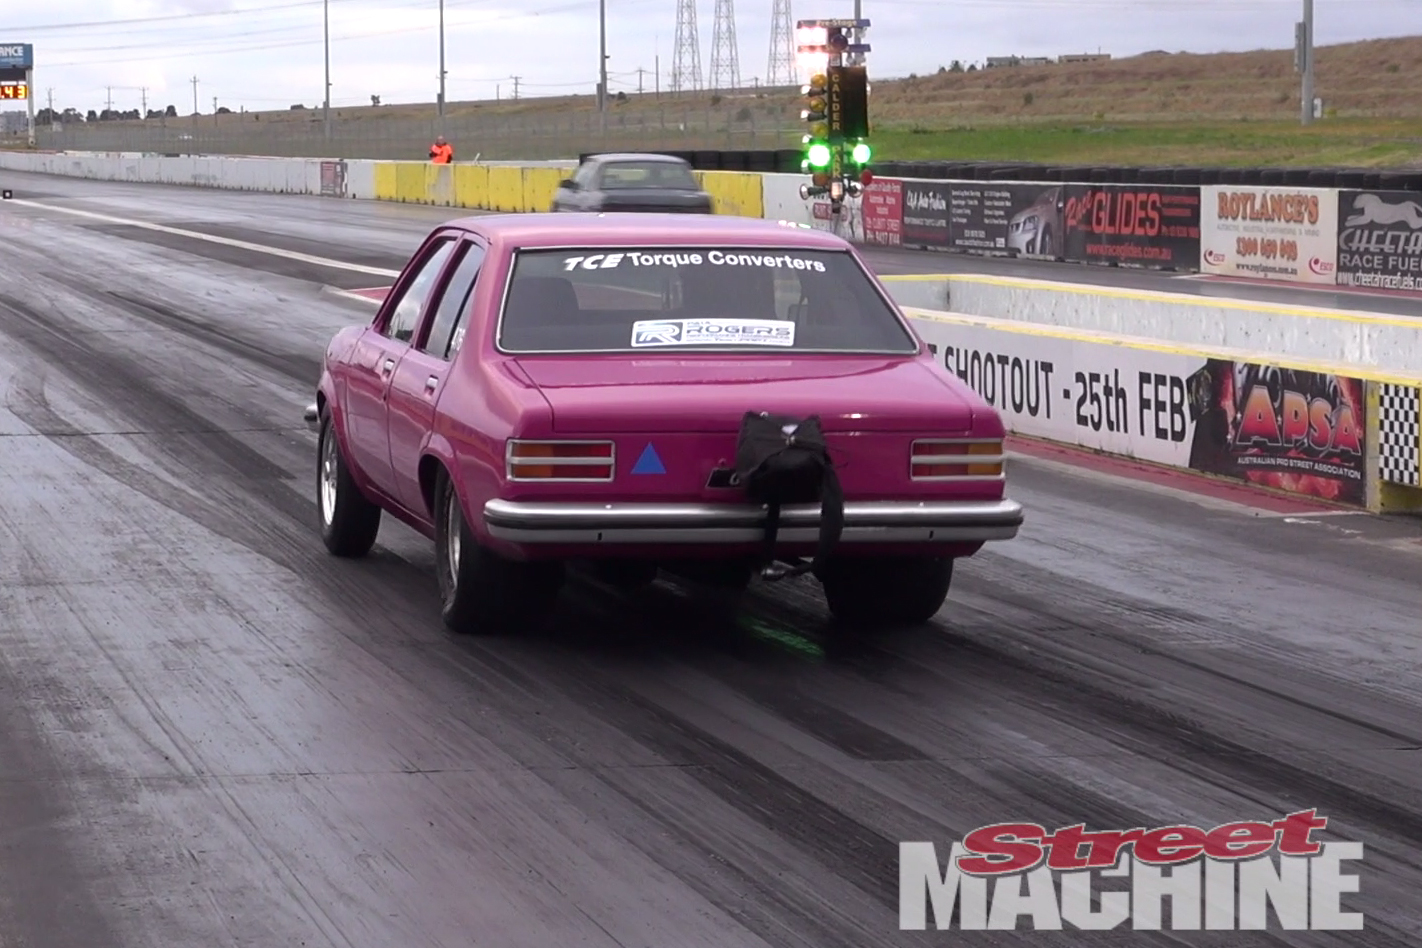 DRAG CHALLENGE CARS AND MORE AT CALDER PARK VIDEO Street Machine - Cool cars quentin